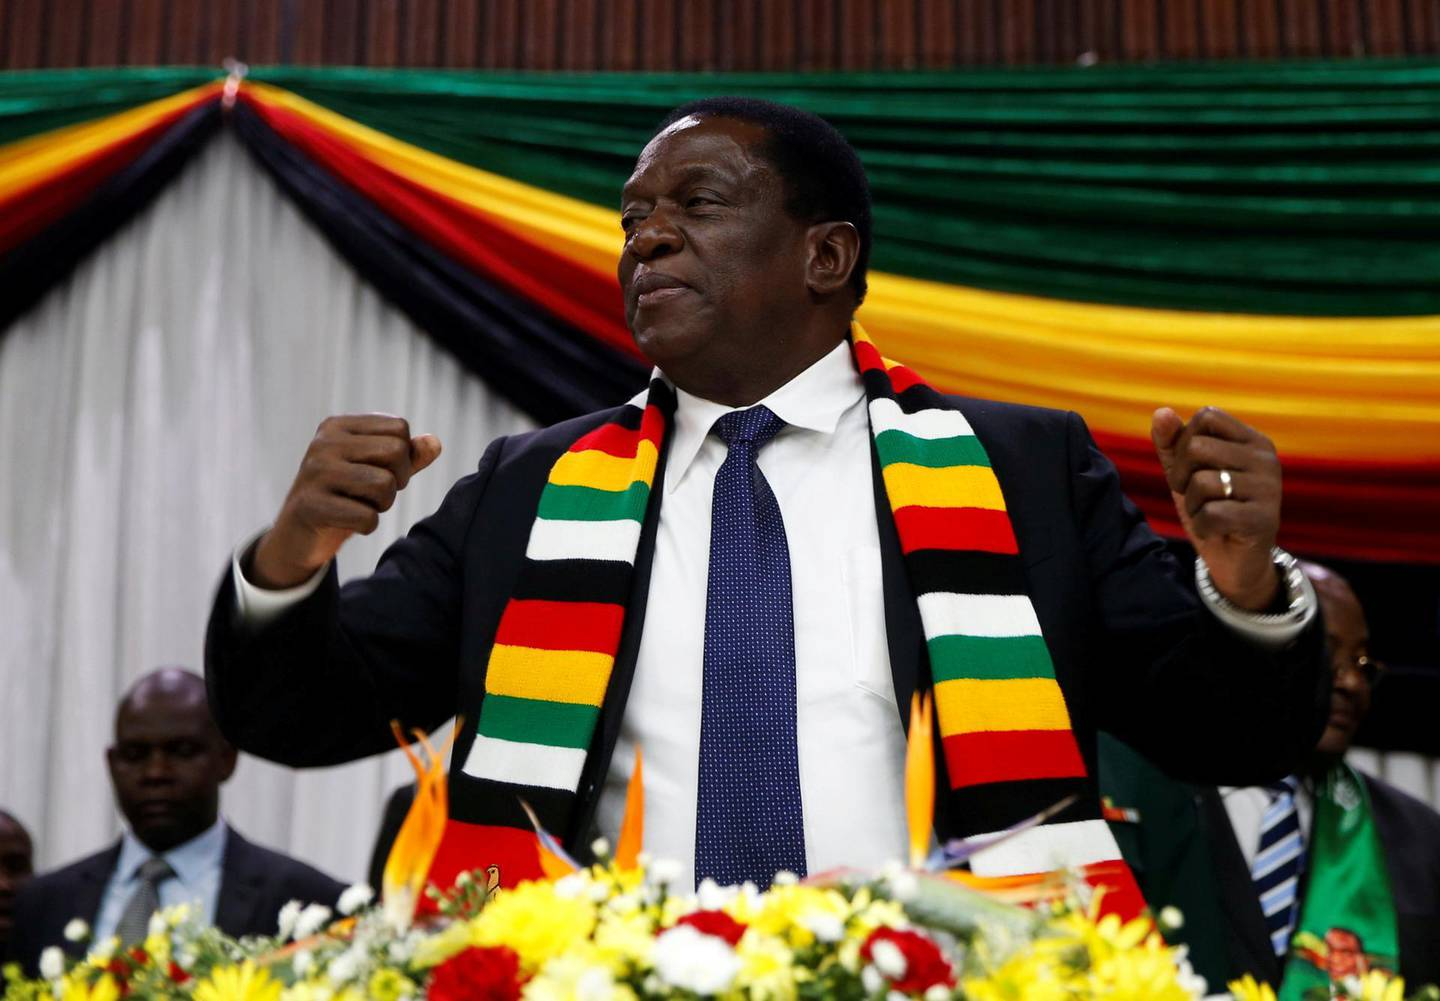 FILE PHOTO: Zimbabwe President Emmerson Mnangagwa announces the date for the general elections in Harare, Zimbabwe May 30, 2018. REUTERS/Philimon Bulawayo/File Photo